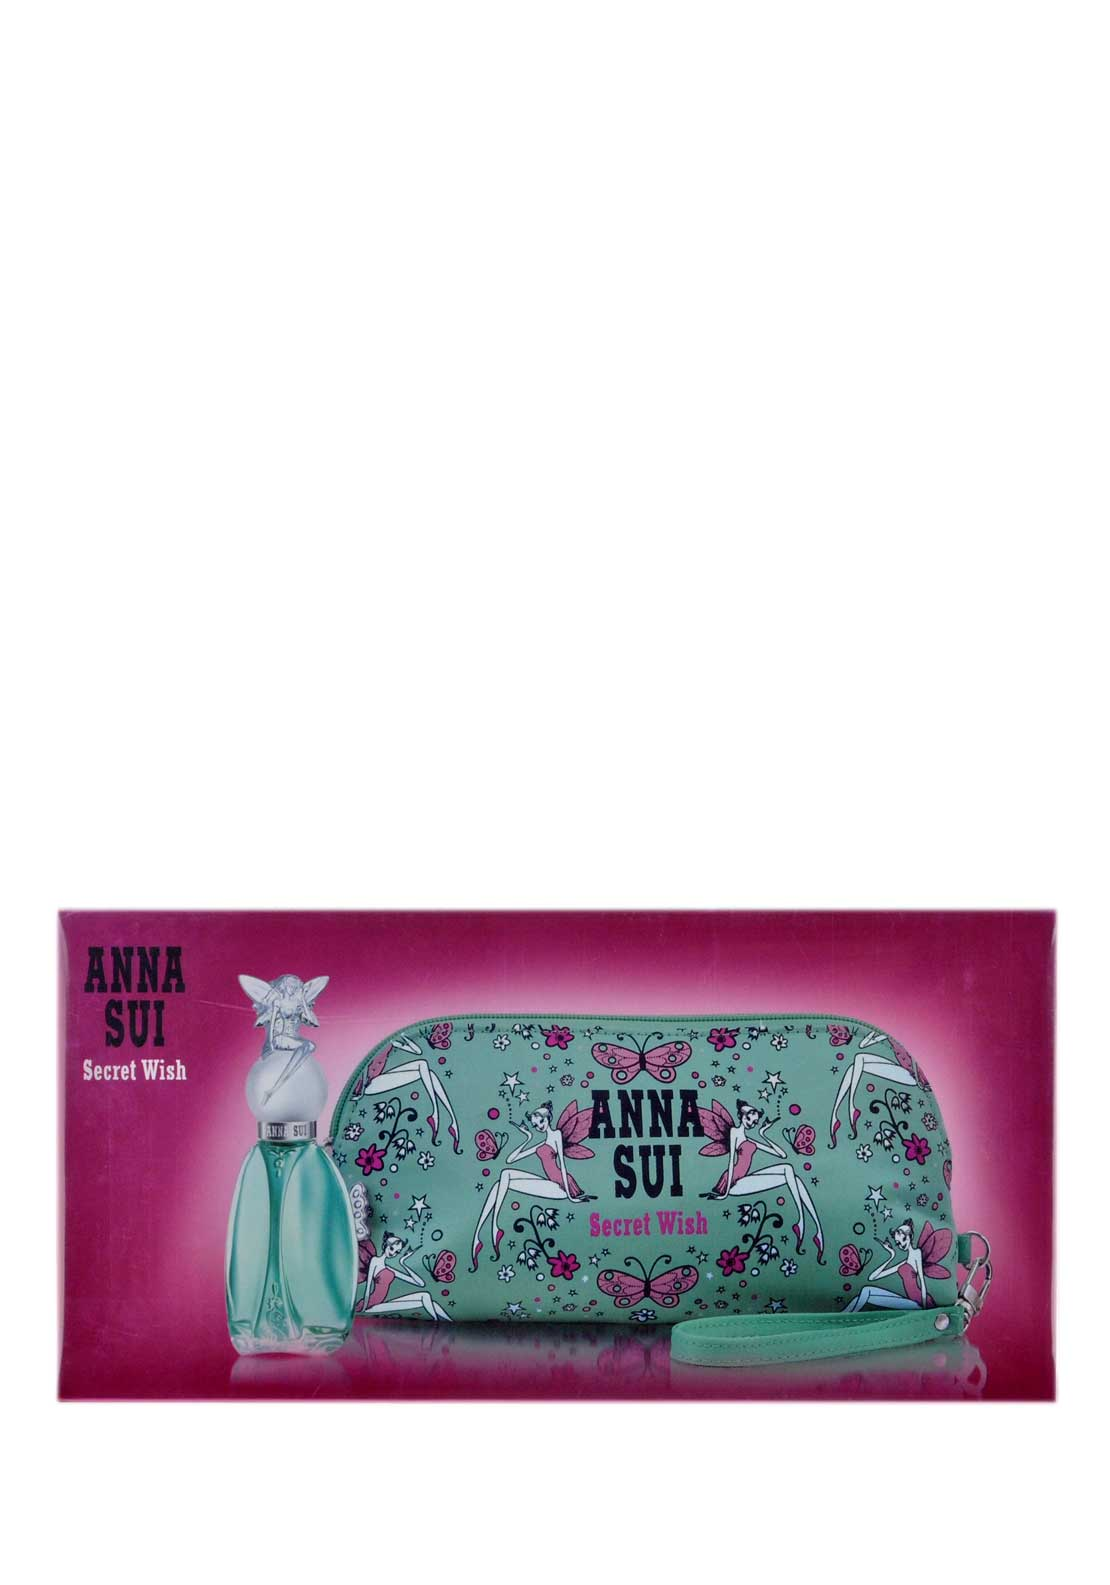 Anna Sui, Secret Wish Gift Set 30ml